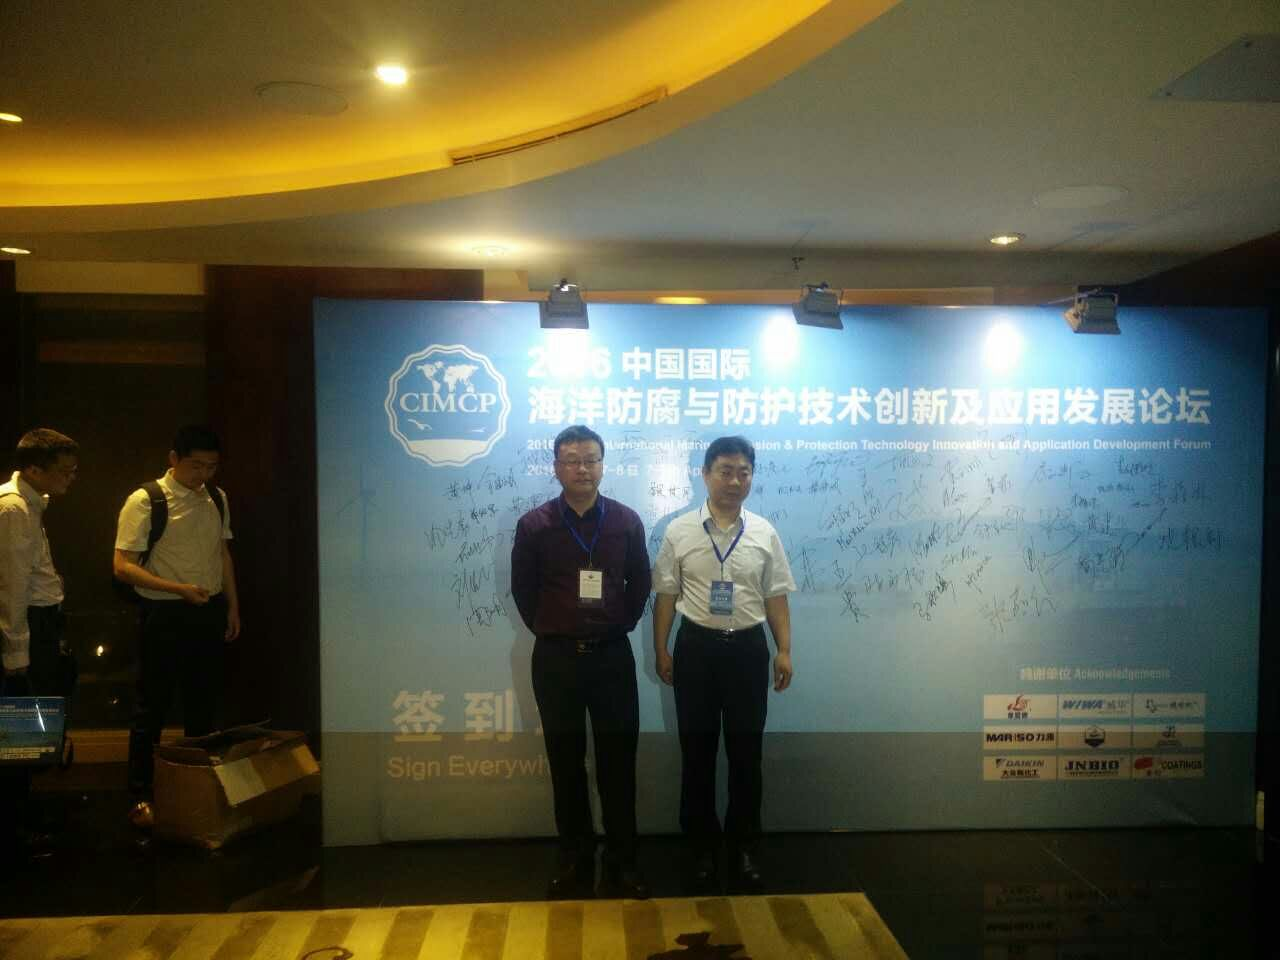 Congratulations to our company for successfully sponsoring and participating in the China International Marine Anticorrosion and Protection Technology Innovation and Application Development Forum